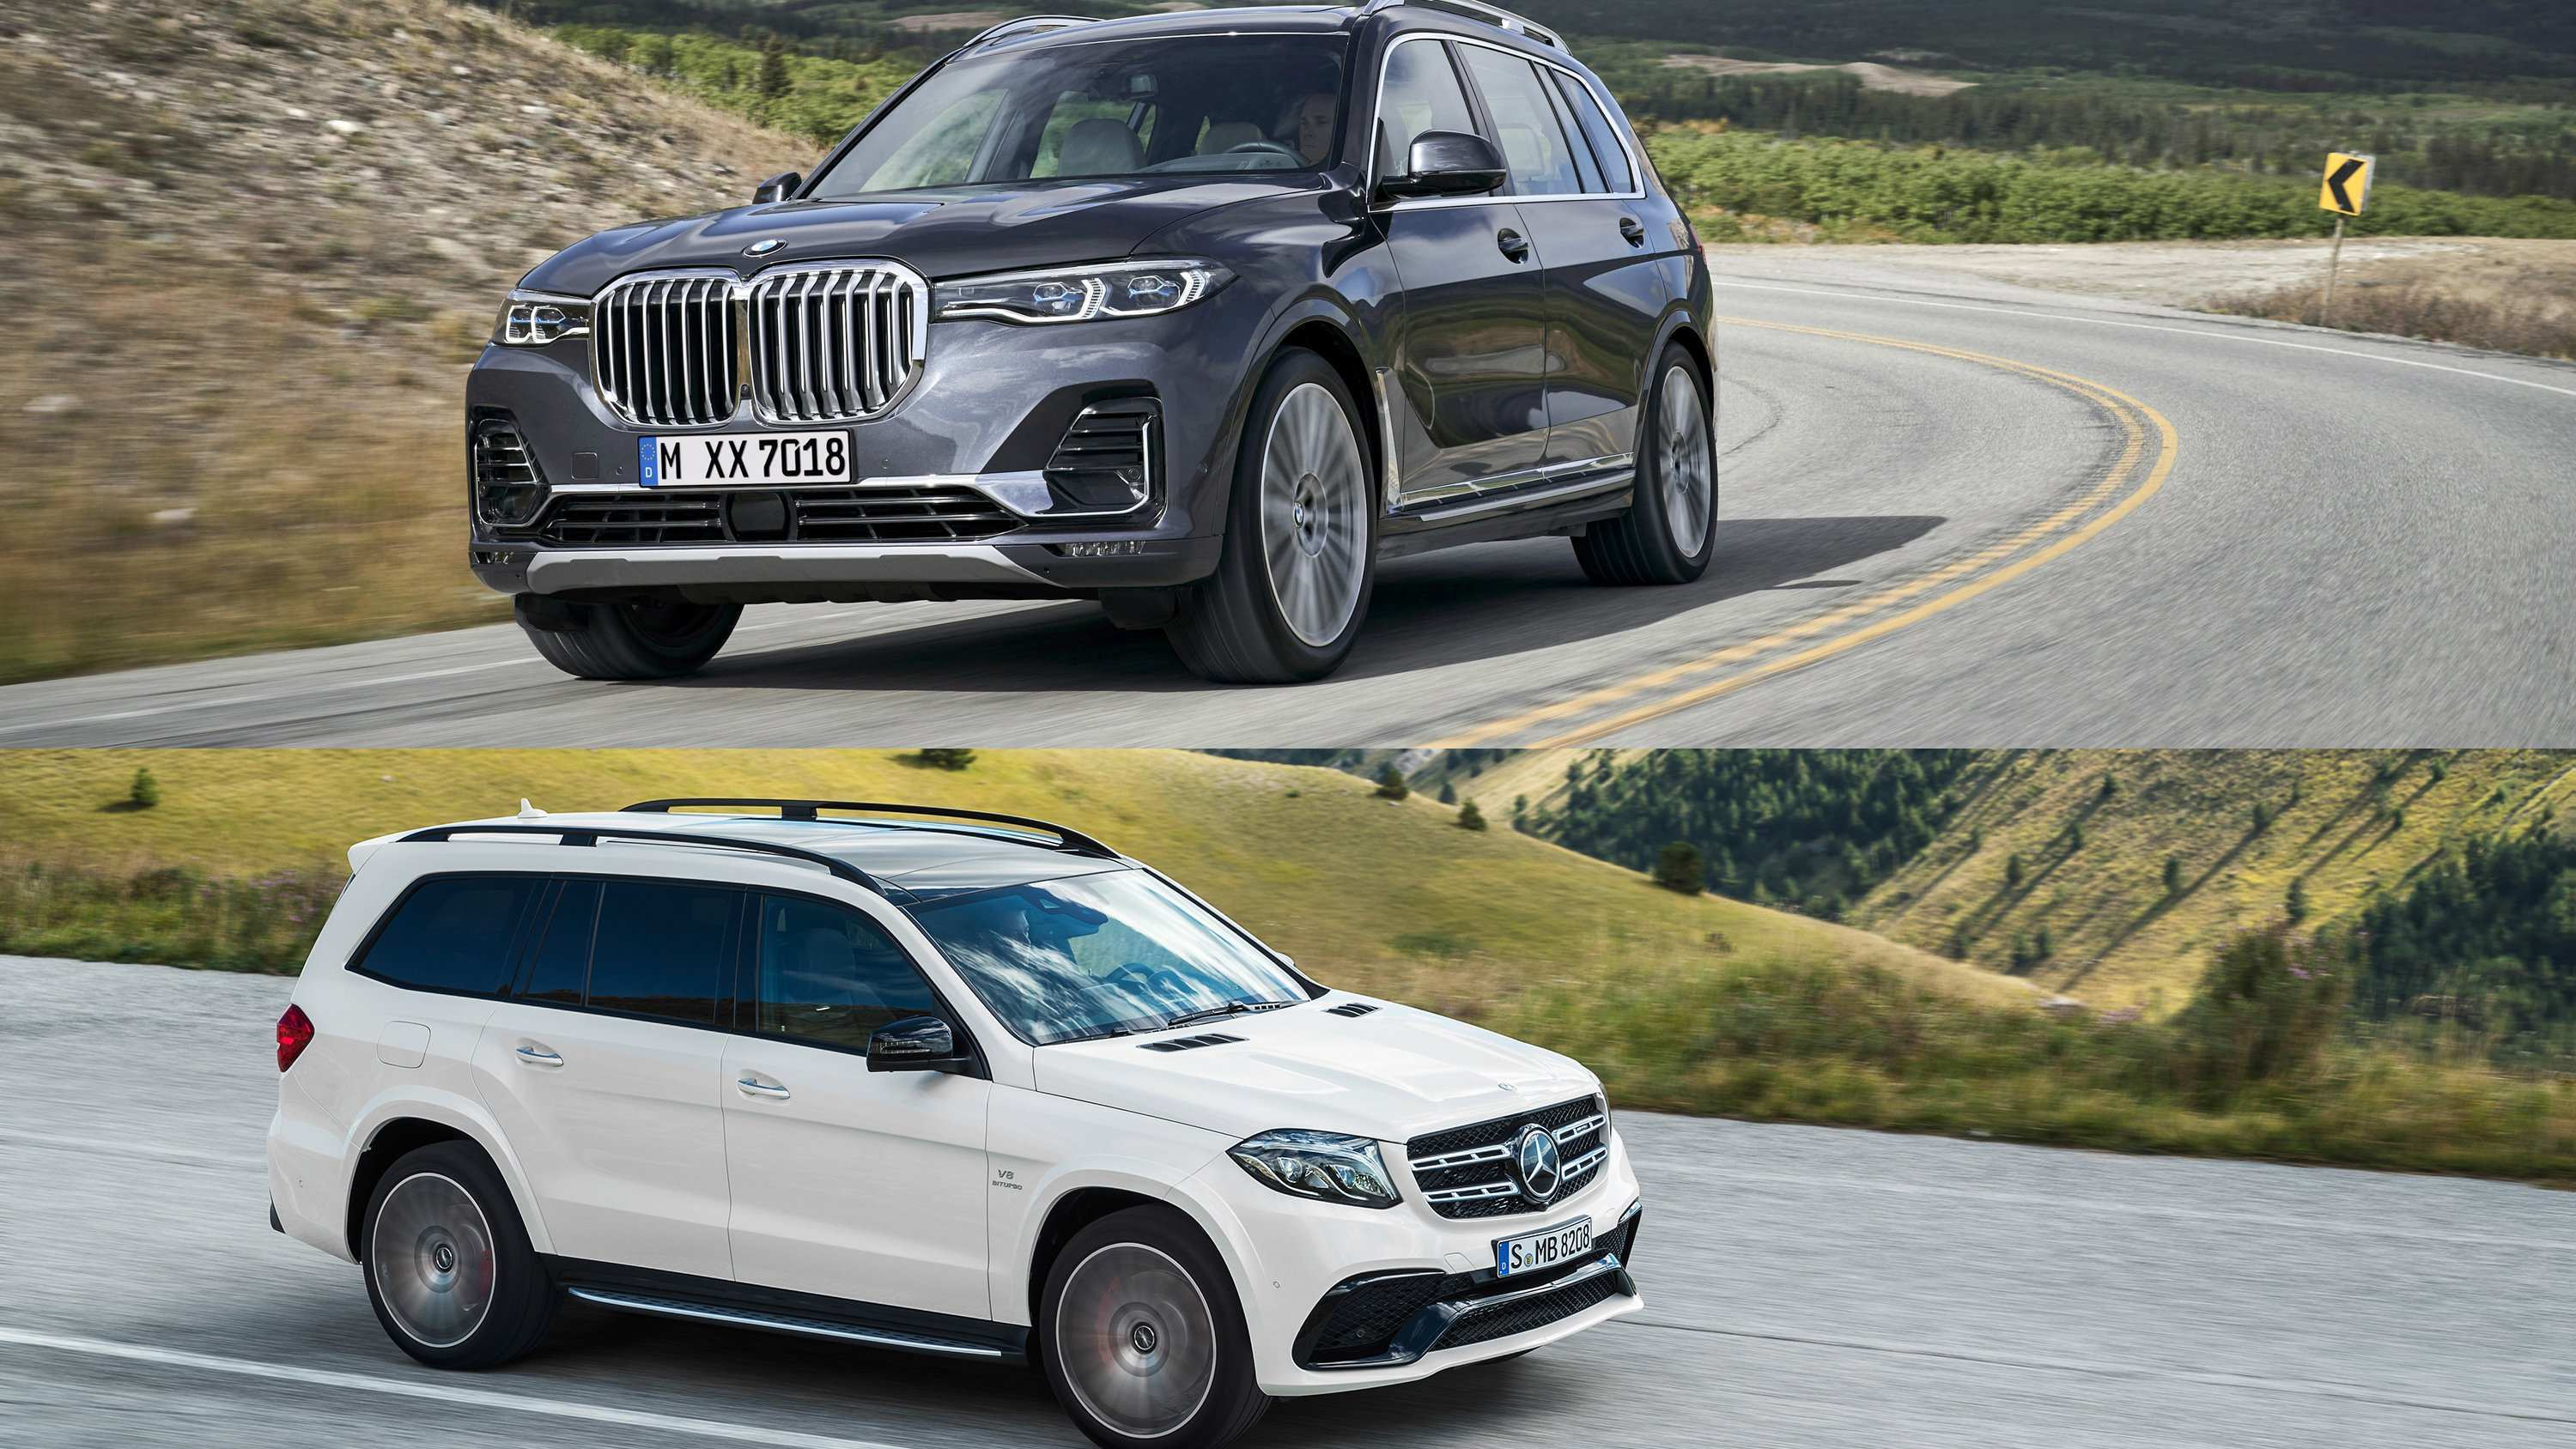 28 The Best 2019 BMW X7 Suv Series Price And Review